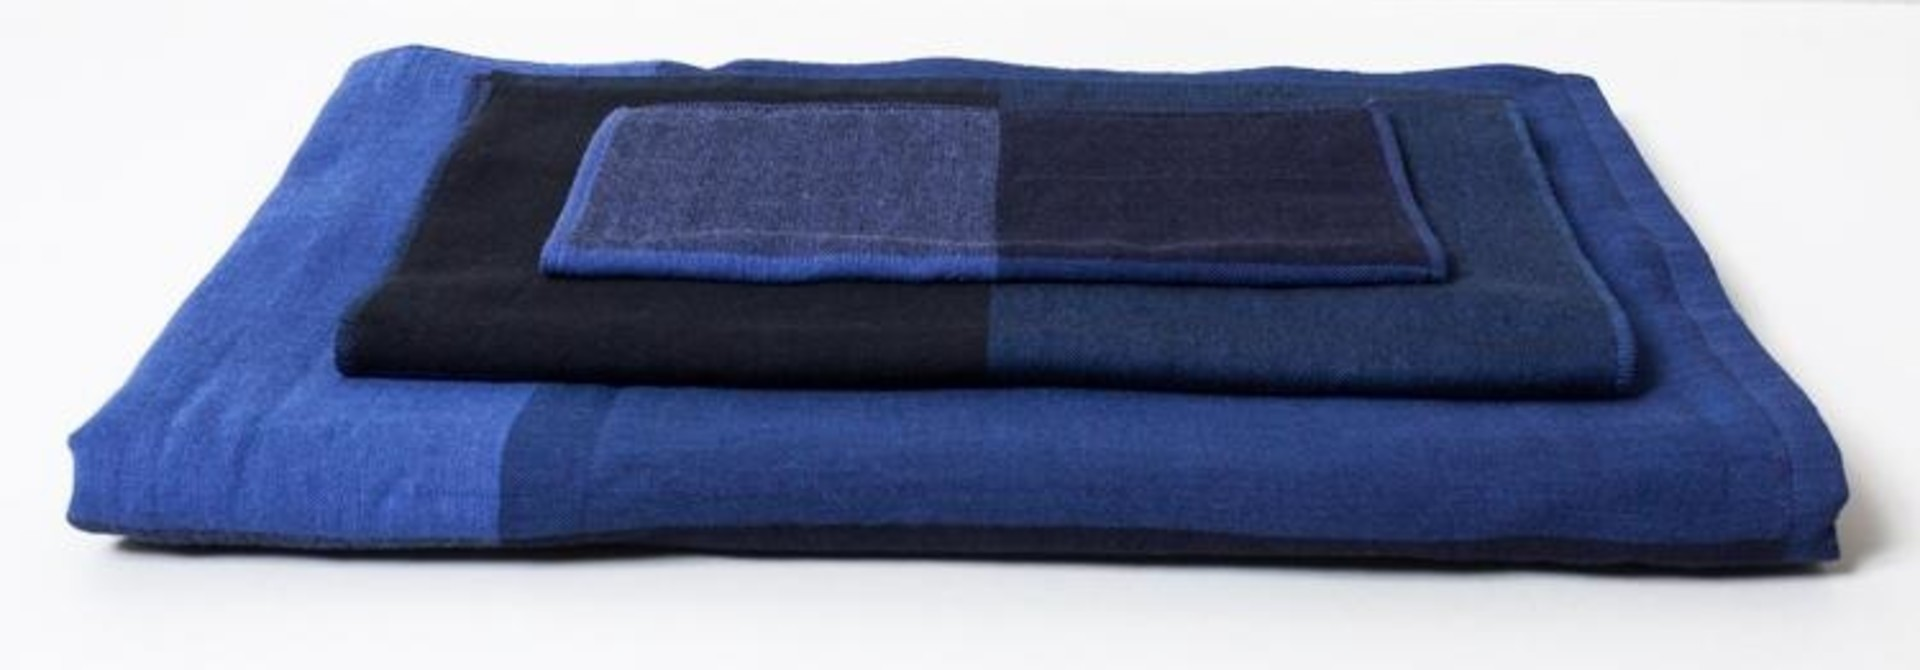 Hand Towel - Chambray - Bl/Blk